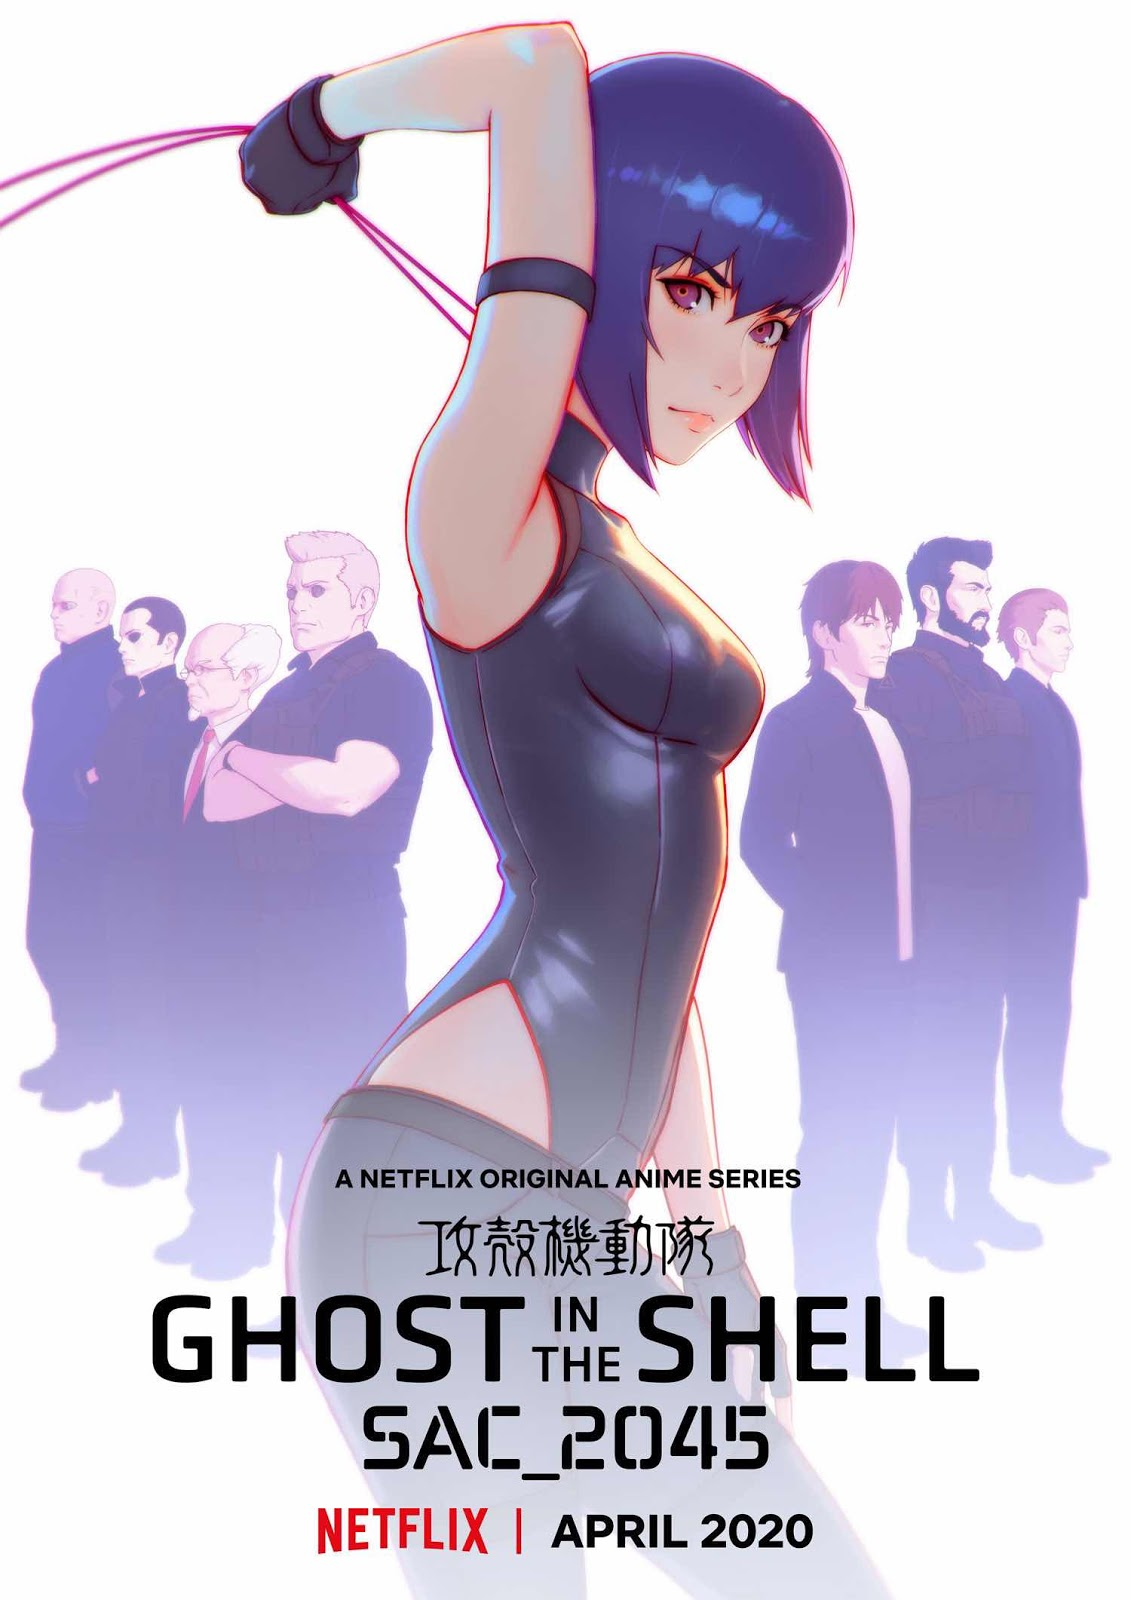 Ghost in the Shell SAC_2045 - Poster